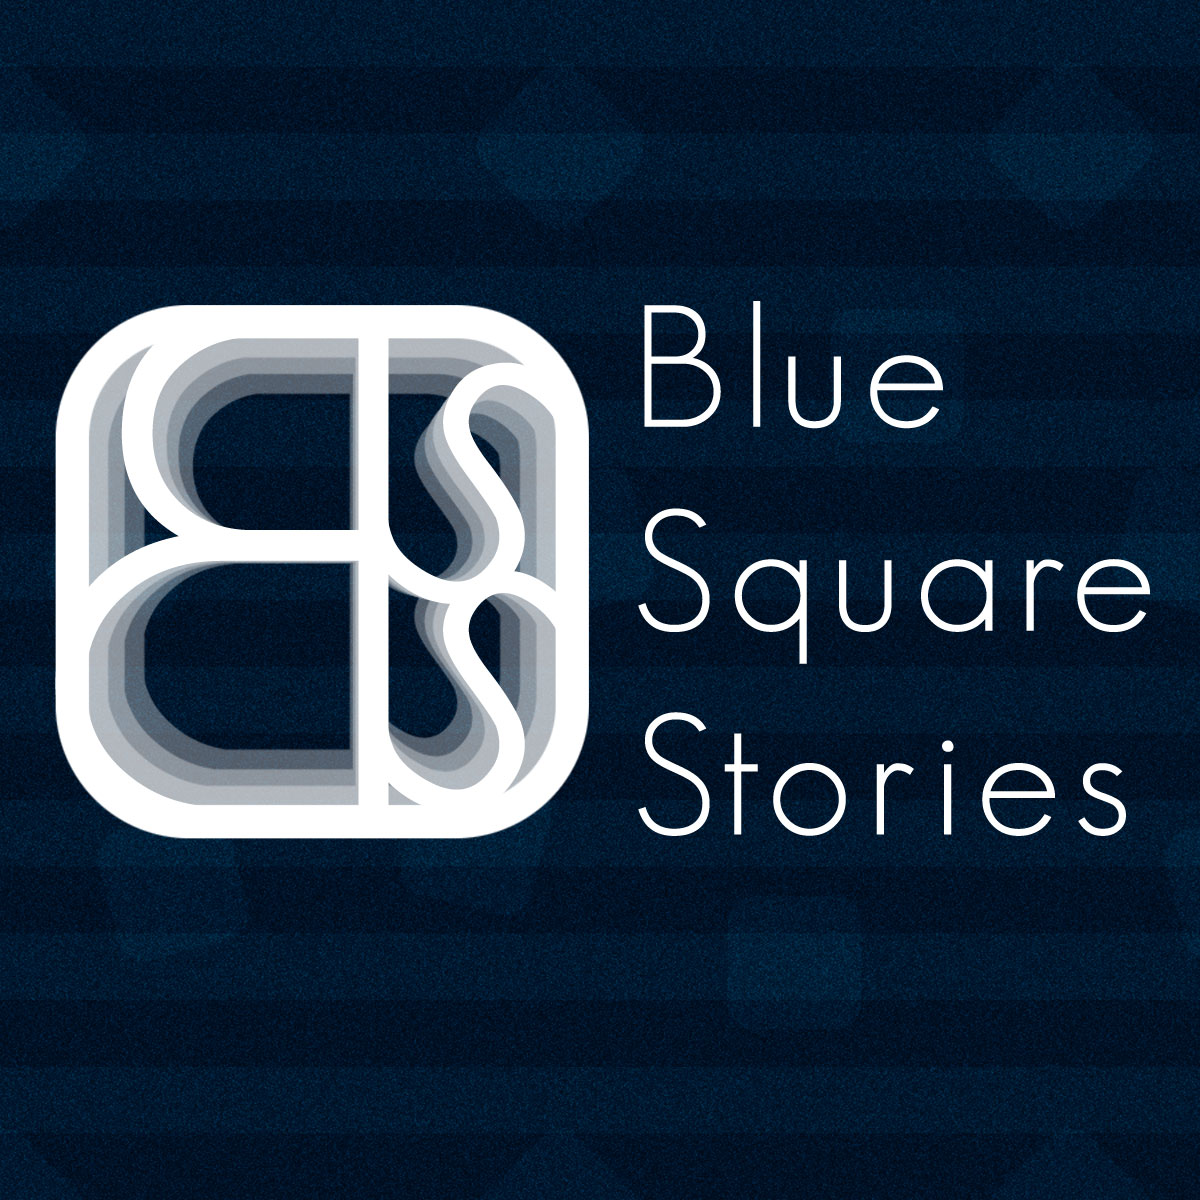 Blue Square Stories Musician Artis - logo design by PixelDuck